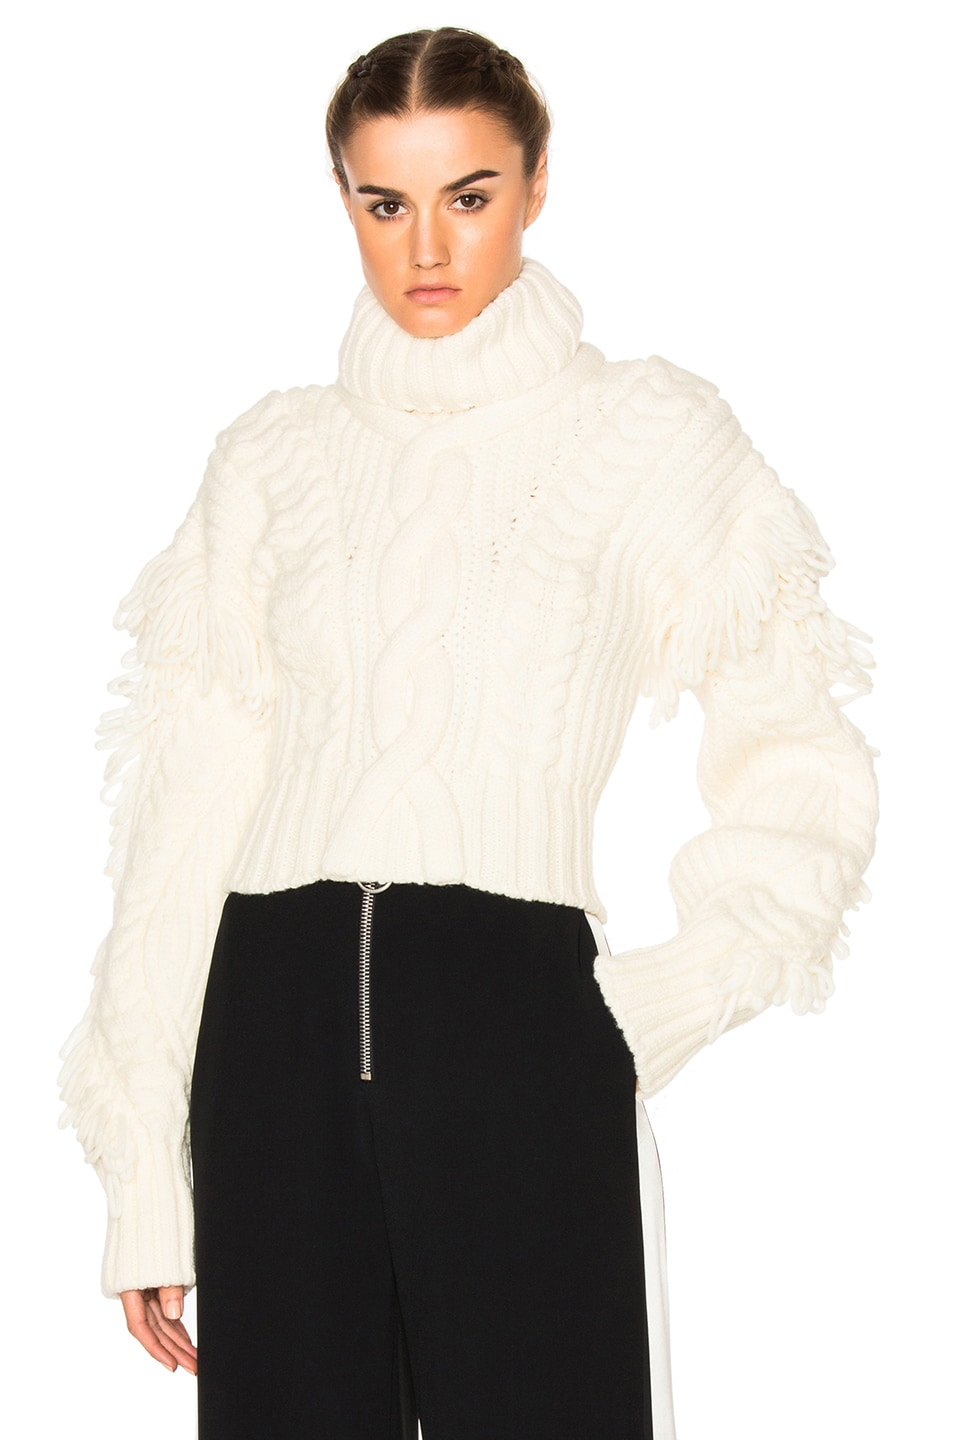 SHOPBOP - Sweaters & Knits FASTEST FREE SHIPPING WORLDWIDE on Sweaters & Knits & FREE EASY RETURNS. Benigna Off Shoulder Sweater $ $ $ Tory Burch Madeline Cardigan Cozy Cable Knit Sweater $ $ $ Line & Dot.